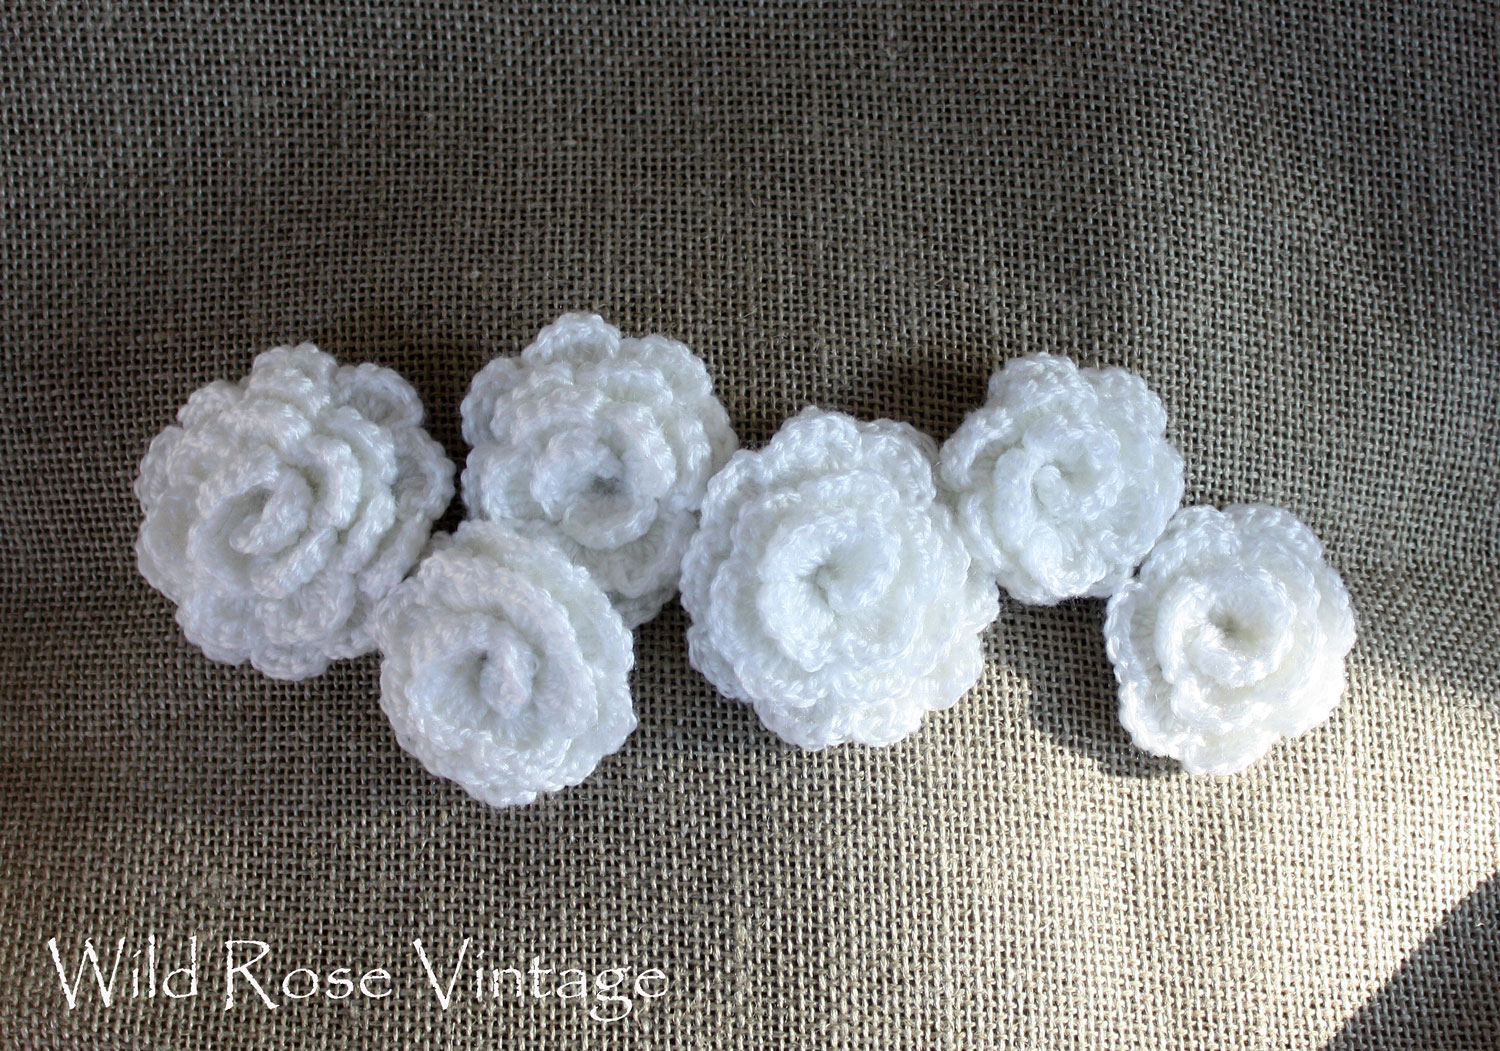 Wild Rose Vintage: Crochet Roses Pillow